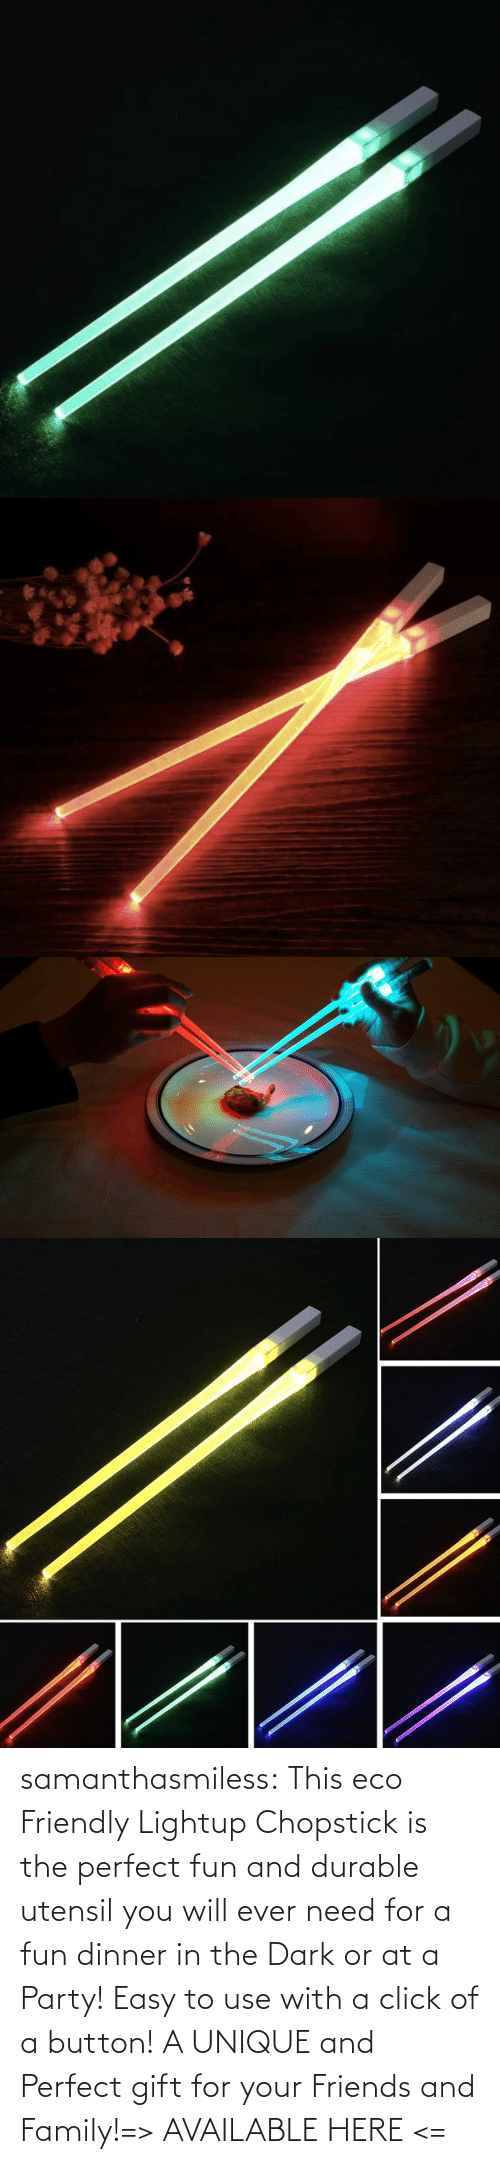 Party: samanthasmiless:  This eco Friendly Lightup Chopstick is the perfect fun and durable utensil you will ever need for a fun dinner in the Dark or at a Party! Easy to use with a click of a button! A UNIQUE and Perfect gift for your Friends and Family!=> AVAILABLE HERE <=